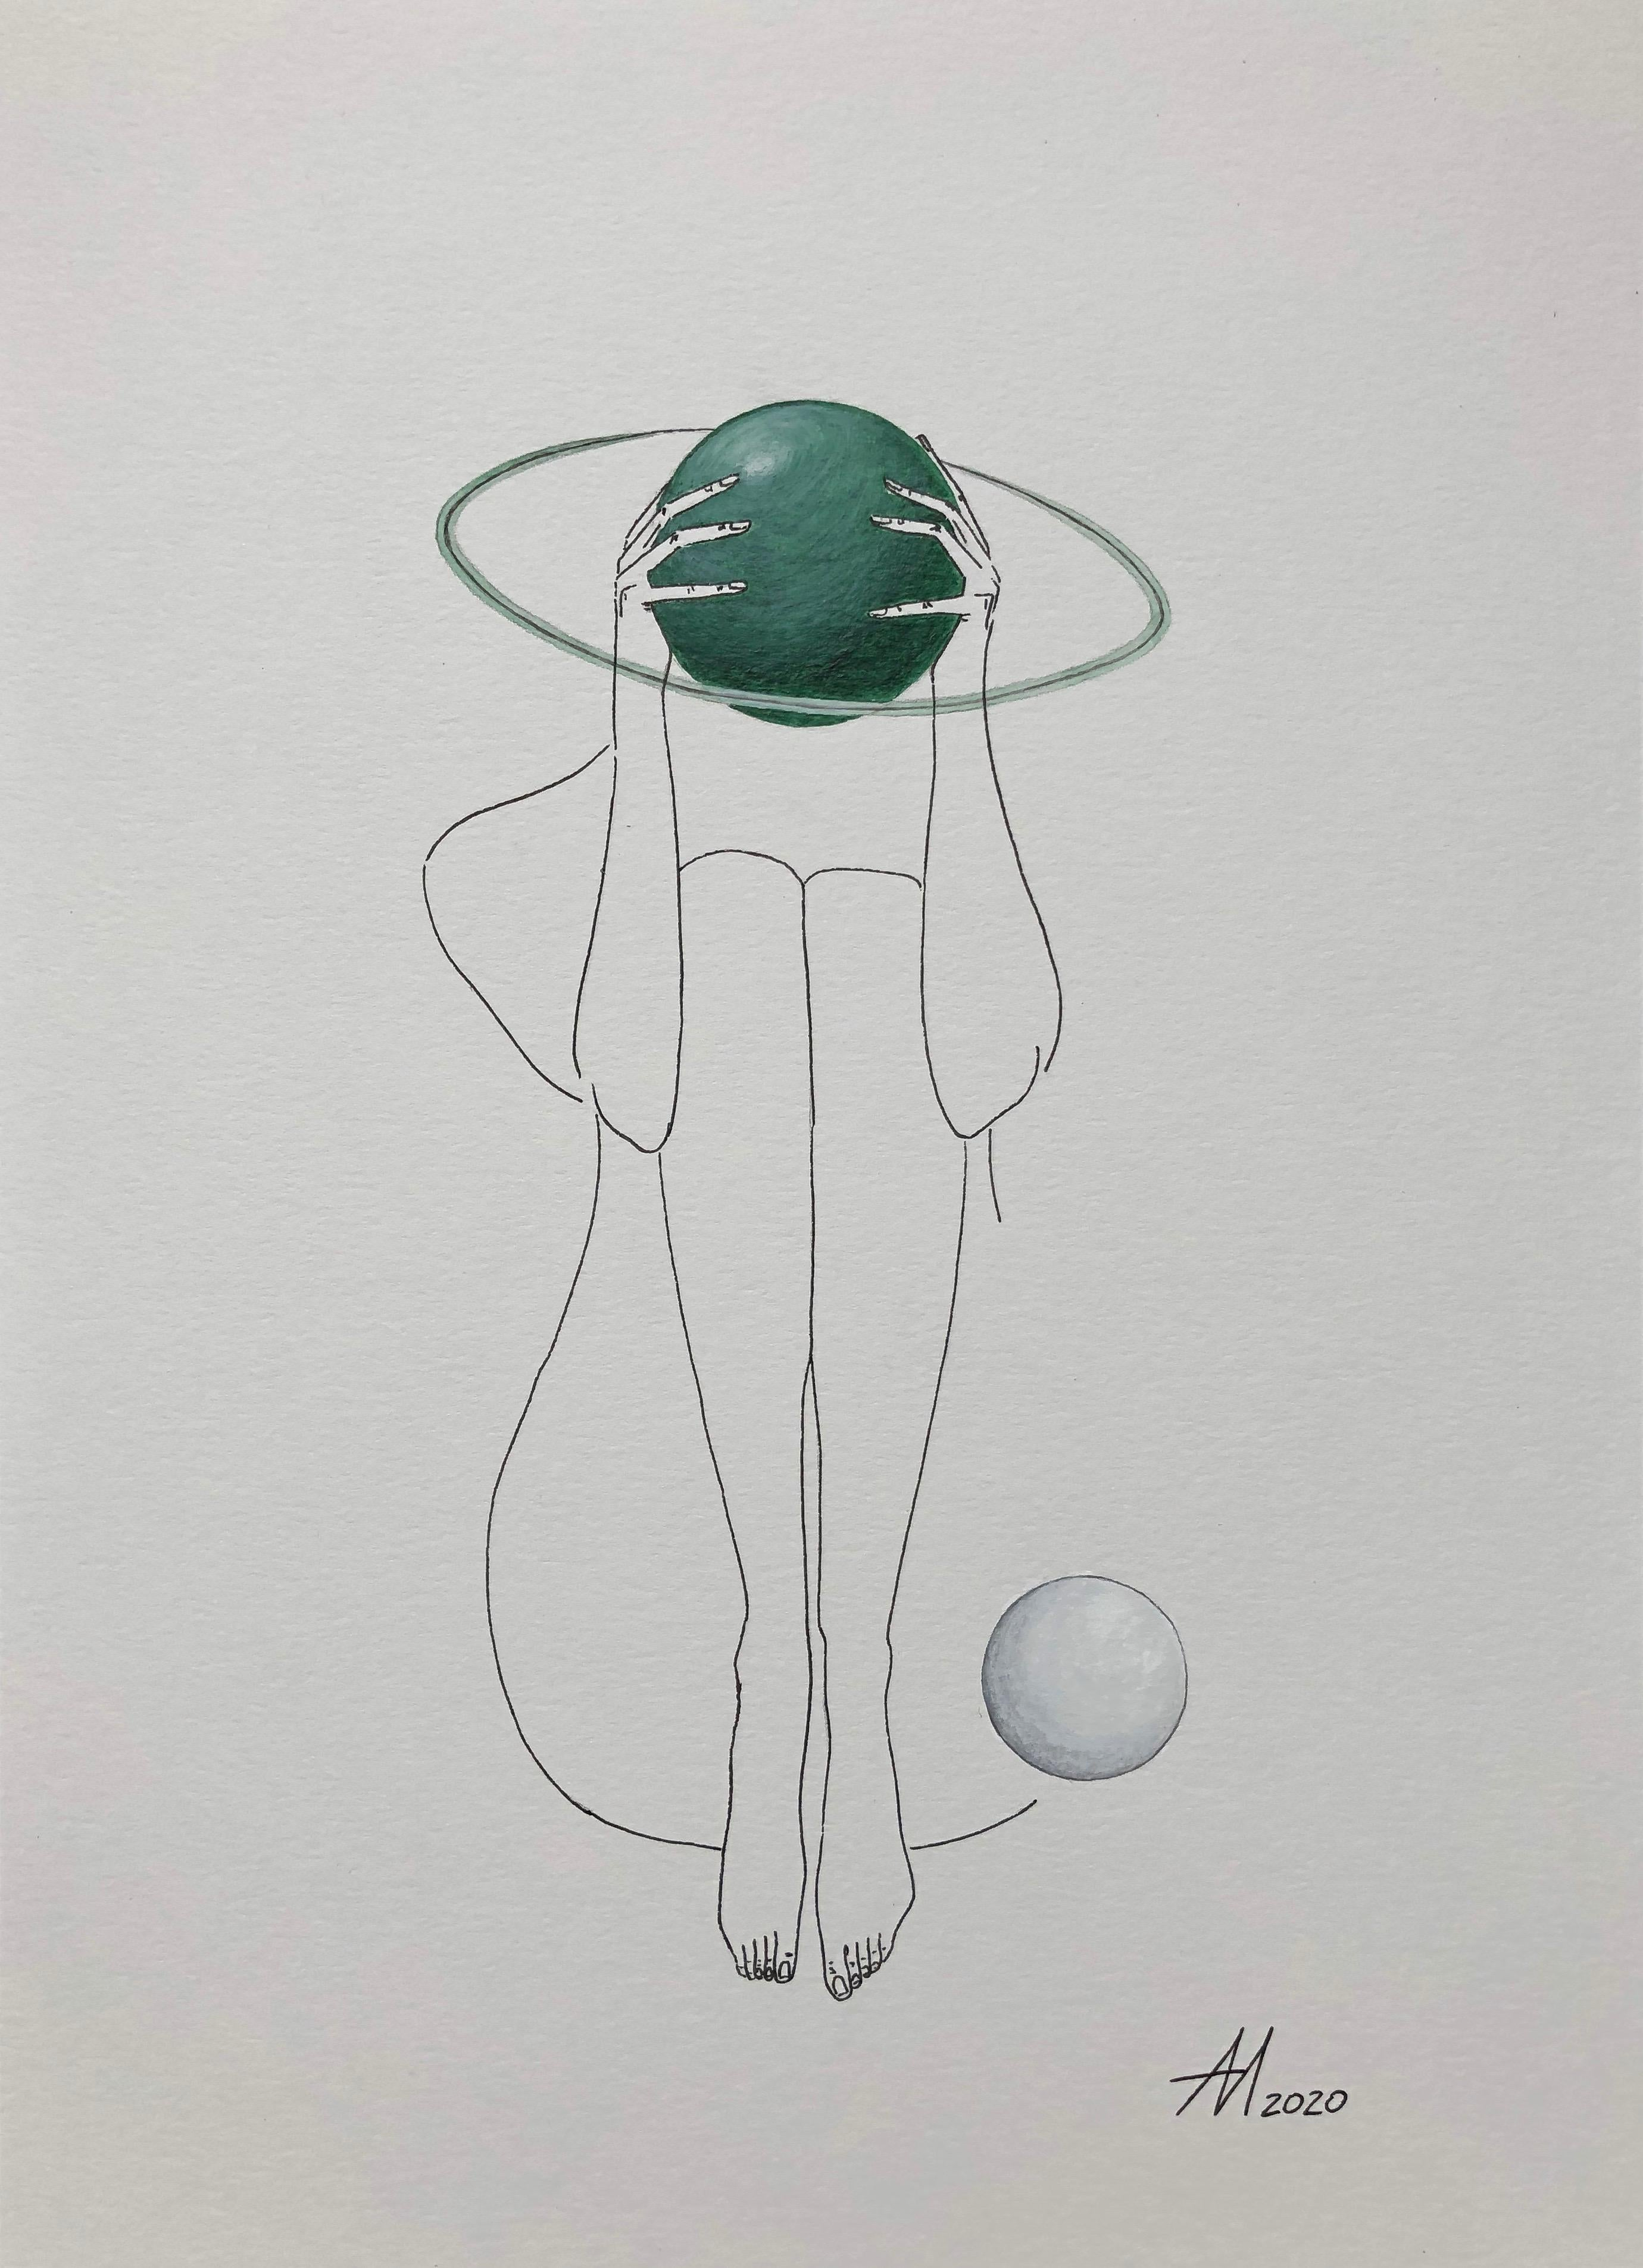 Green Saturn - line drawing woman figure with circle